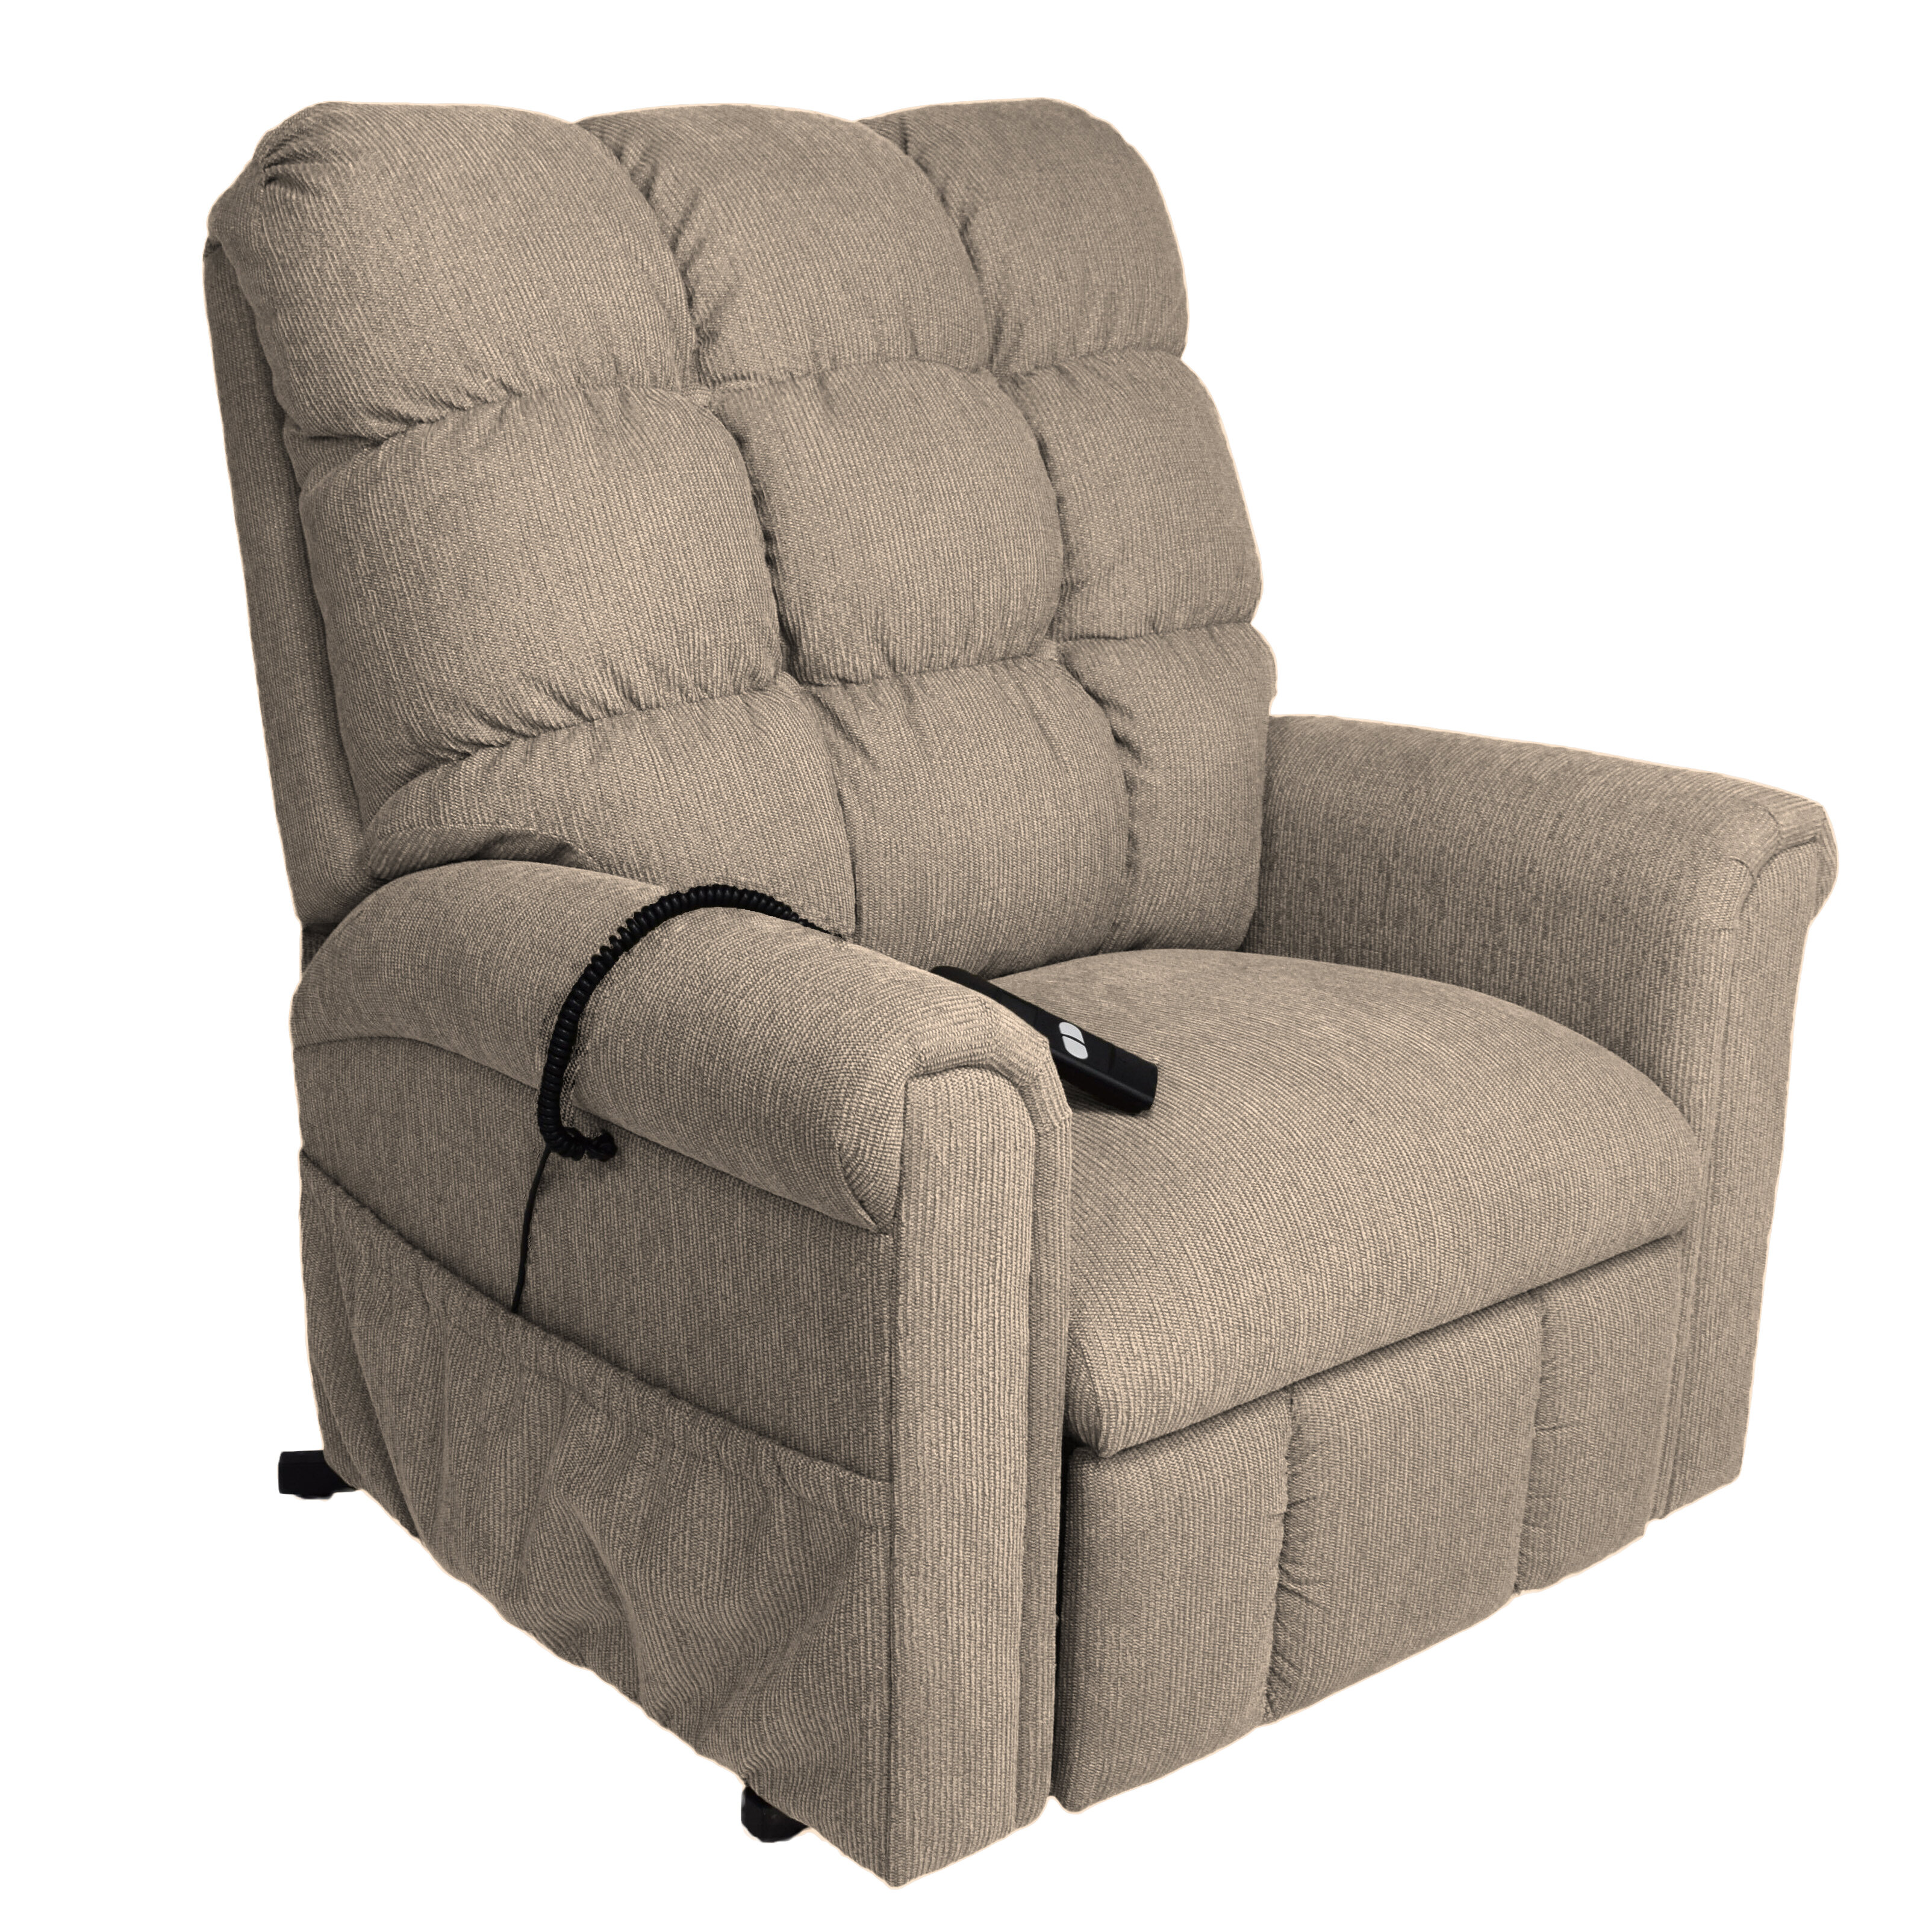 Comfort Chair Company American Series Power Lift Assist Recliner With Massage And Heating Reviews Wayfair